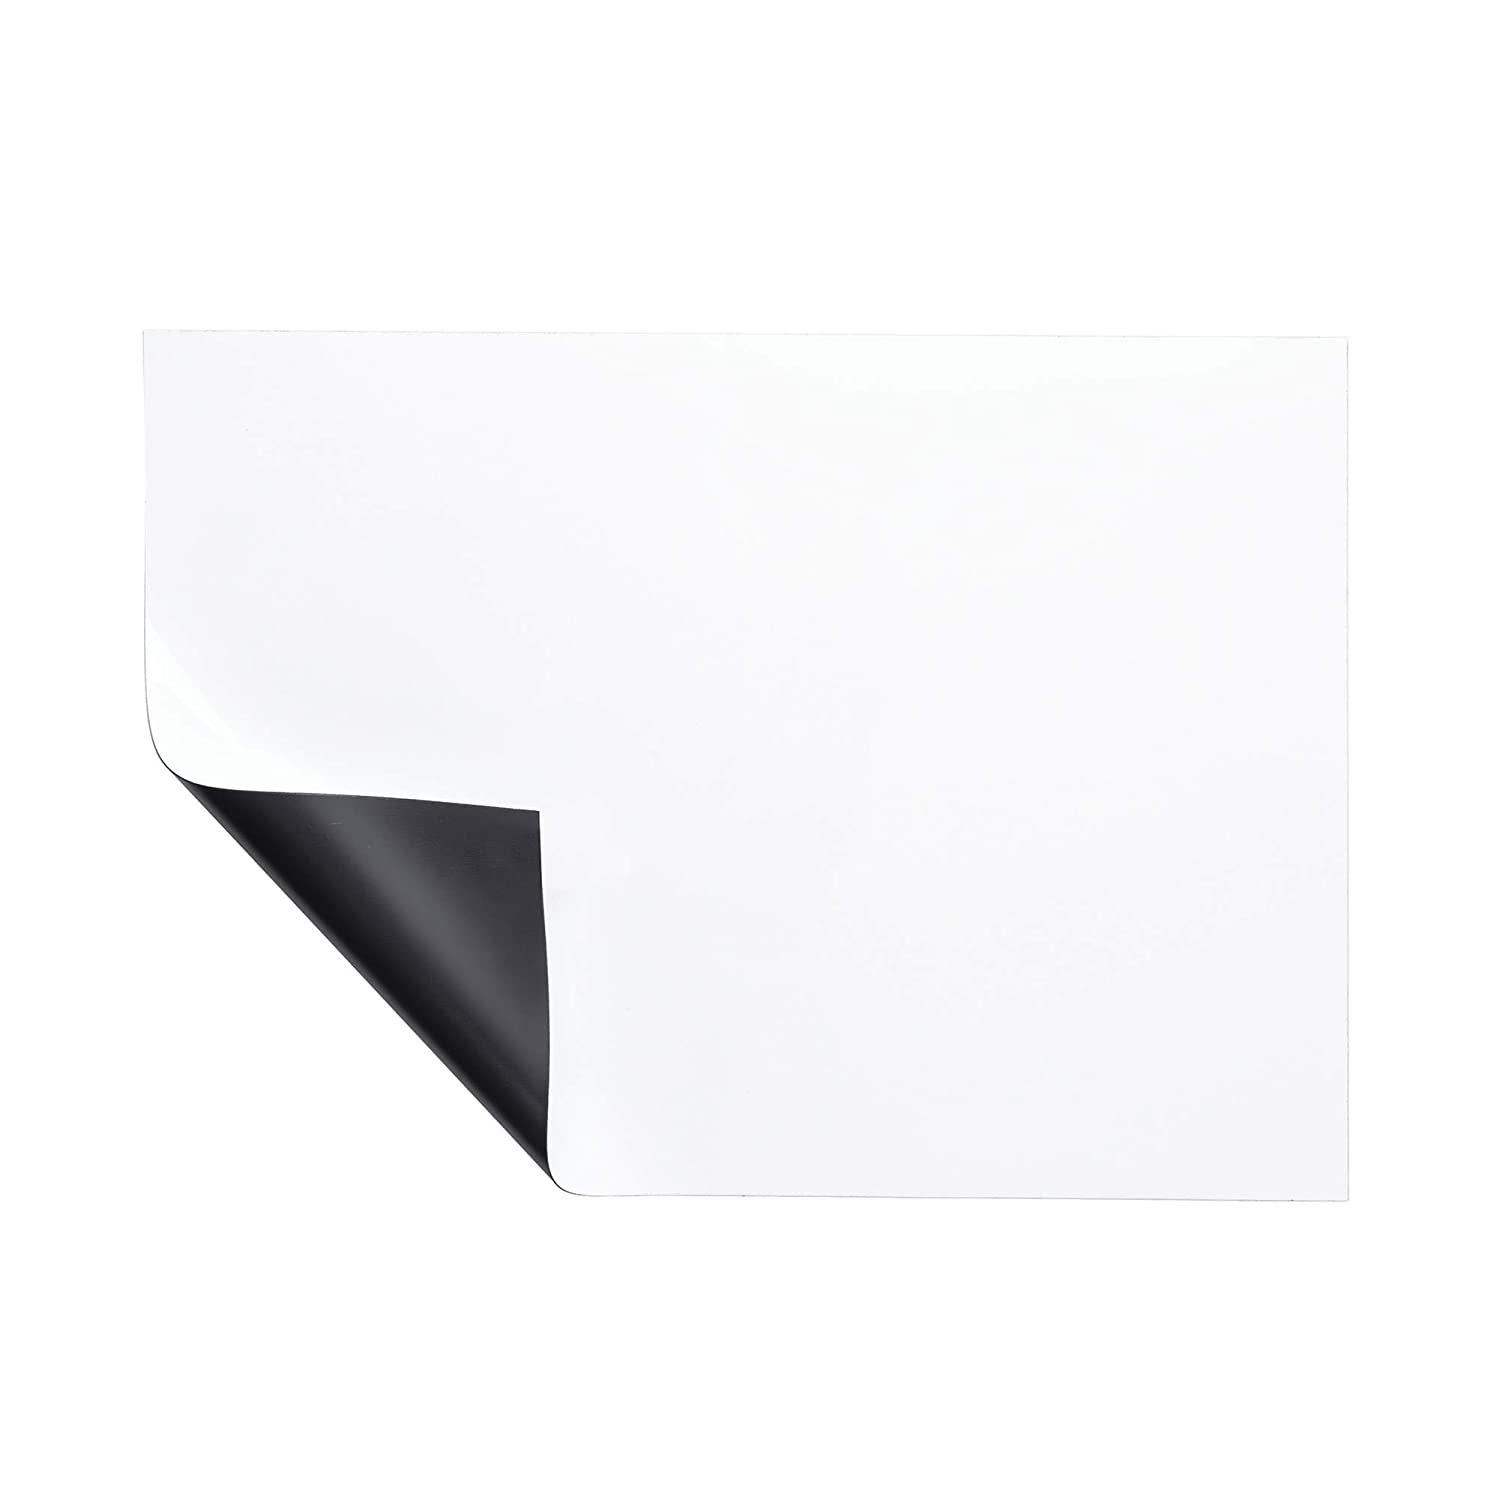 """Bluecell 11.75 x 8.3"""" A4 Size Magnetic Soft Whiteboard White Board Sticker for Home and Office Fridge Refrigerator Writing Notes and Reminders"""